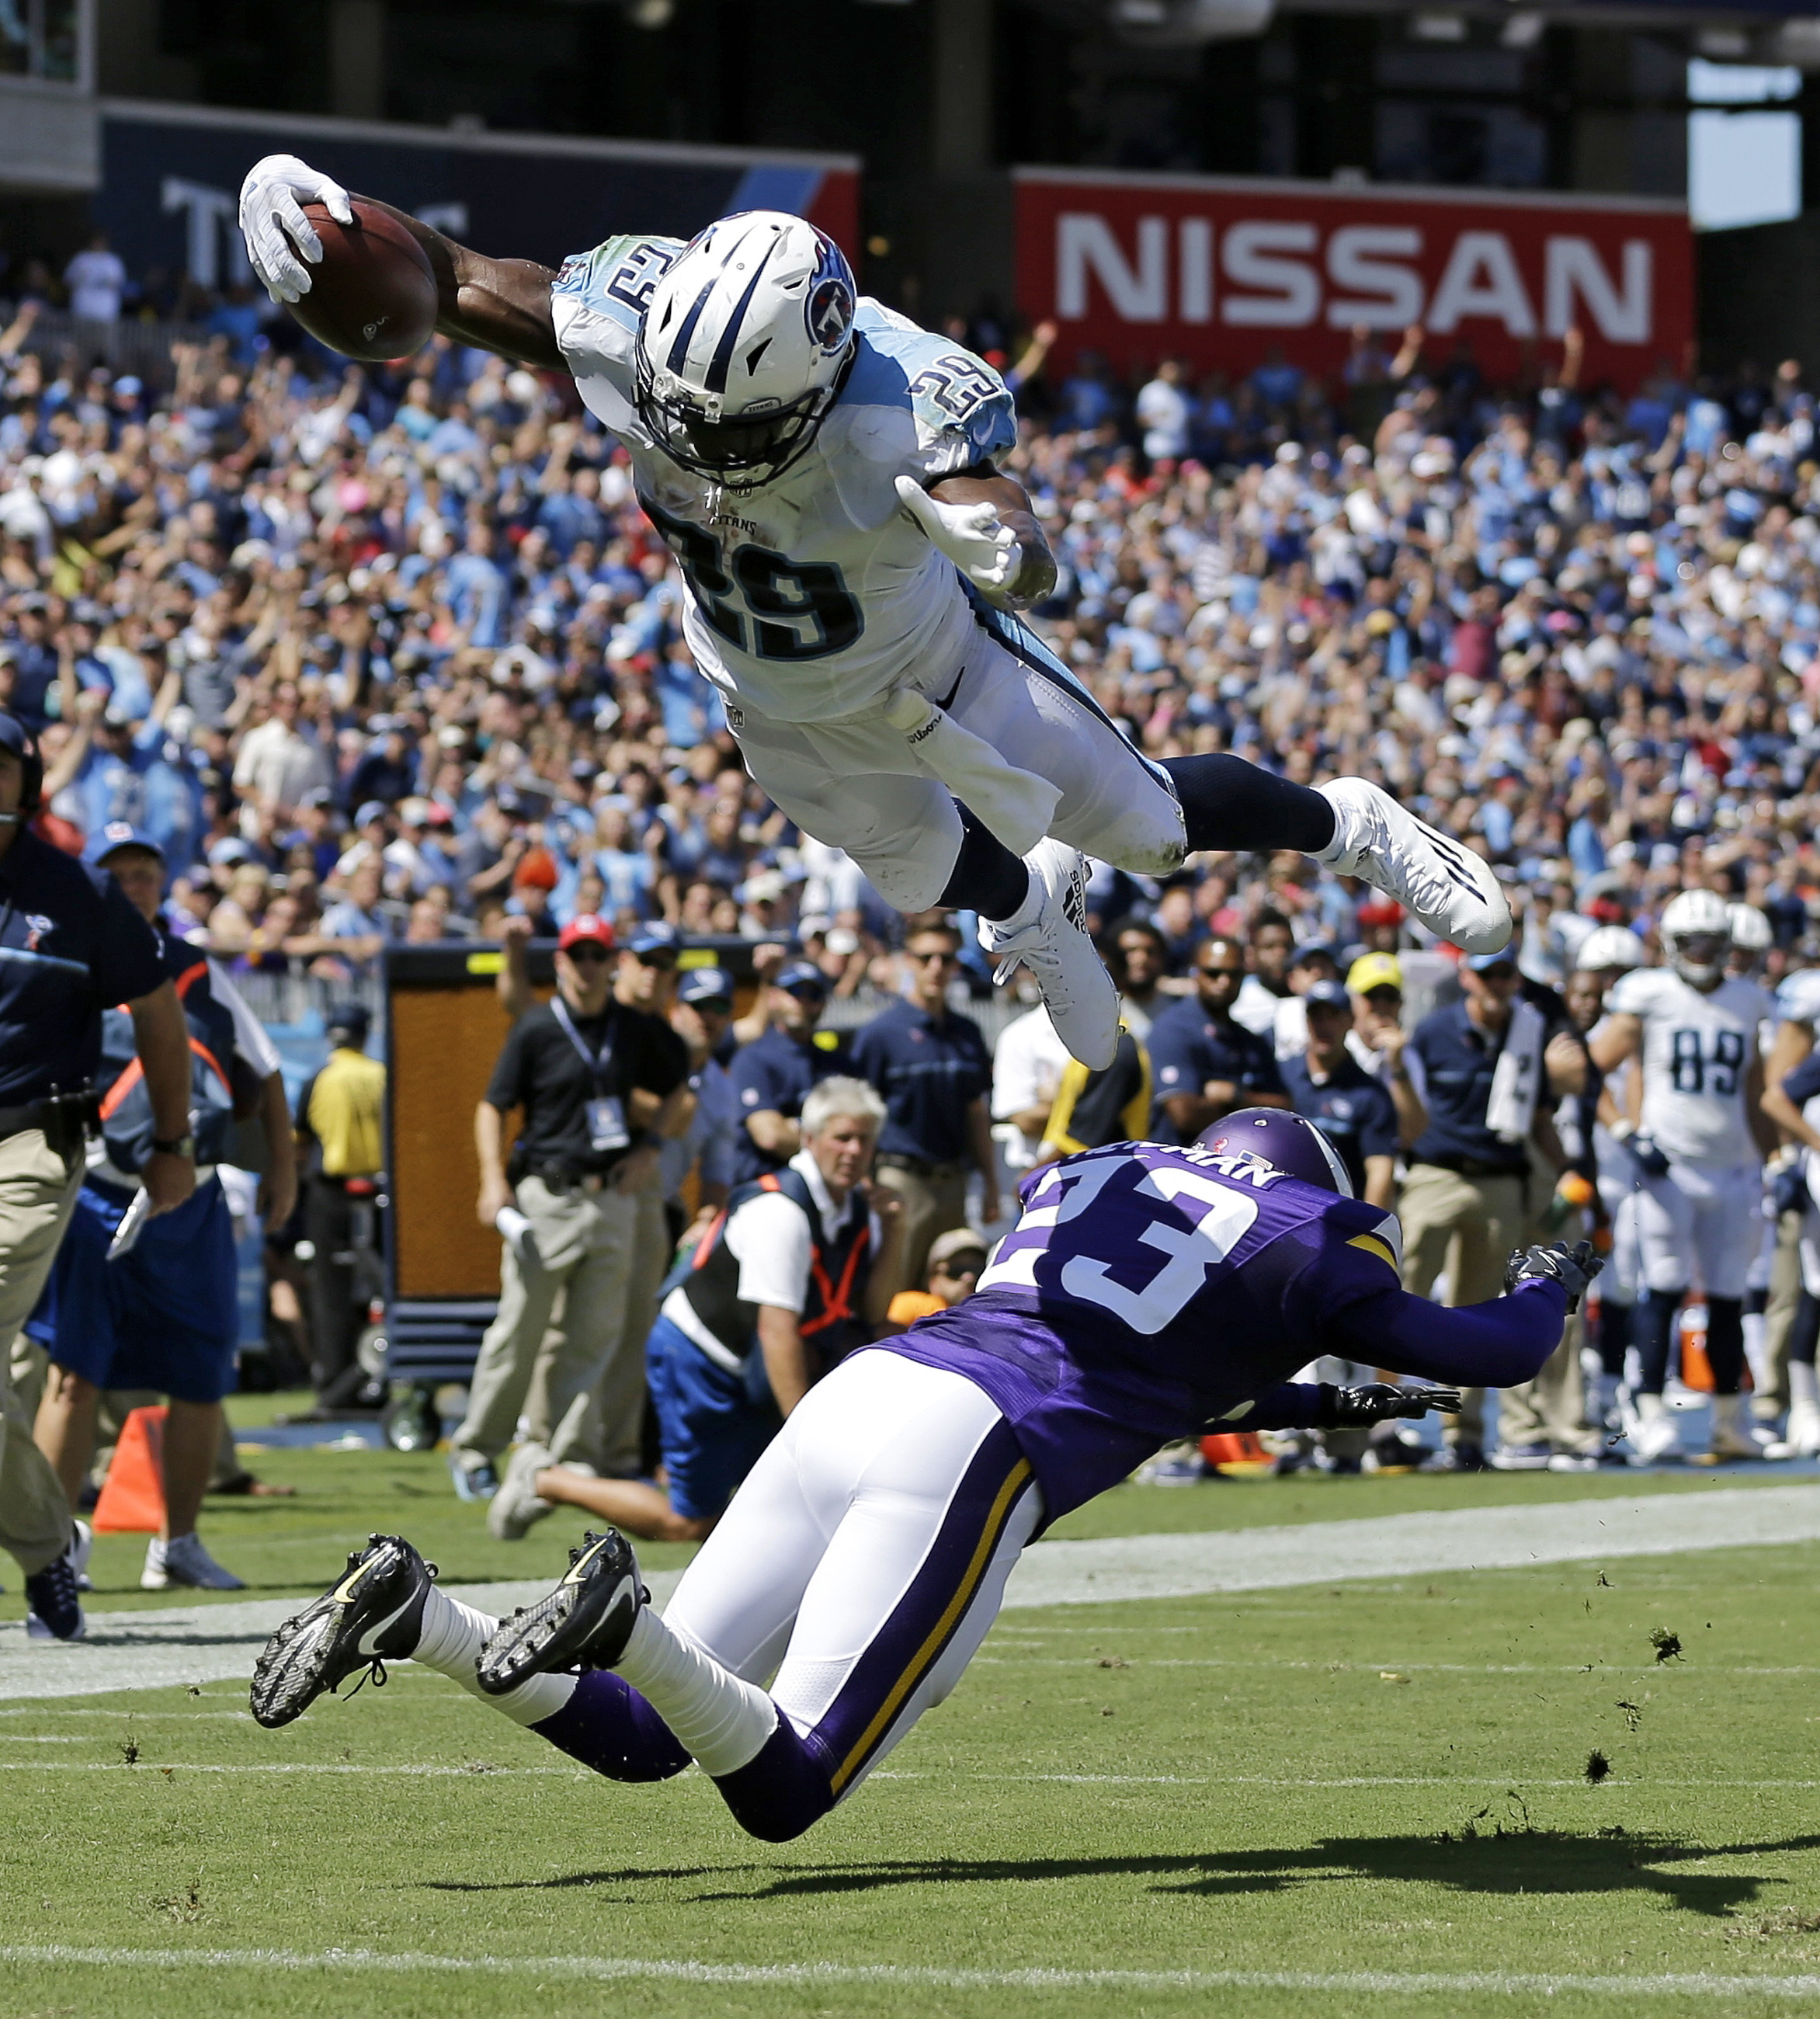 FILE - In this Sept. 11, 2016, file photo, Tennessee Titans running back DeMarco Murray (29) dives over Minnesota Vikings cornerback Terence Newman (23) as Murray scores a touchdown on a 6-yard pass reception in the first half of an NFL football game, in